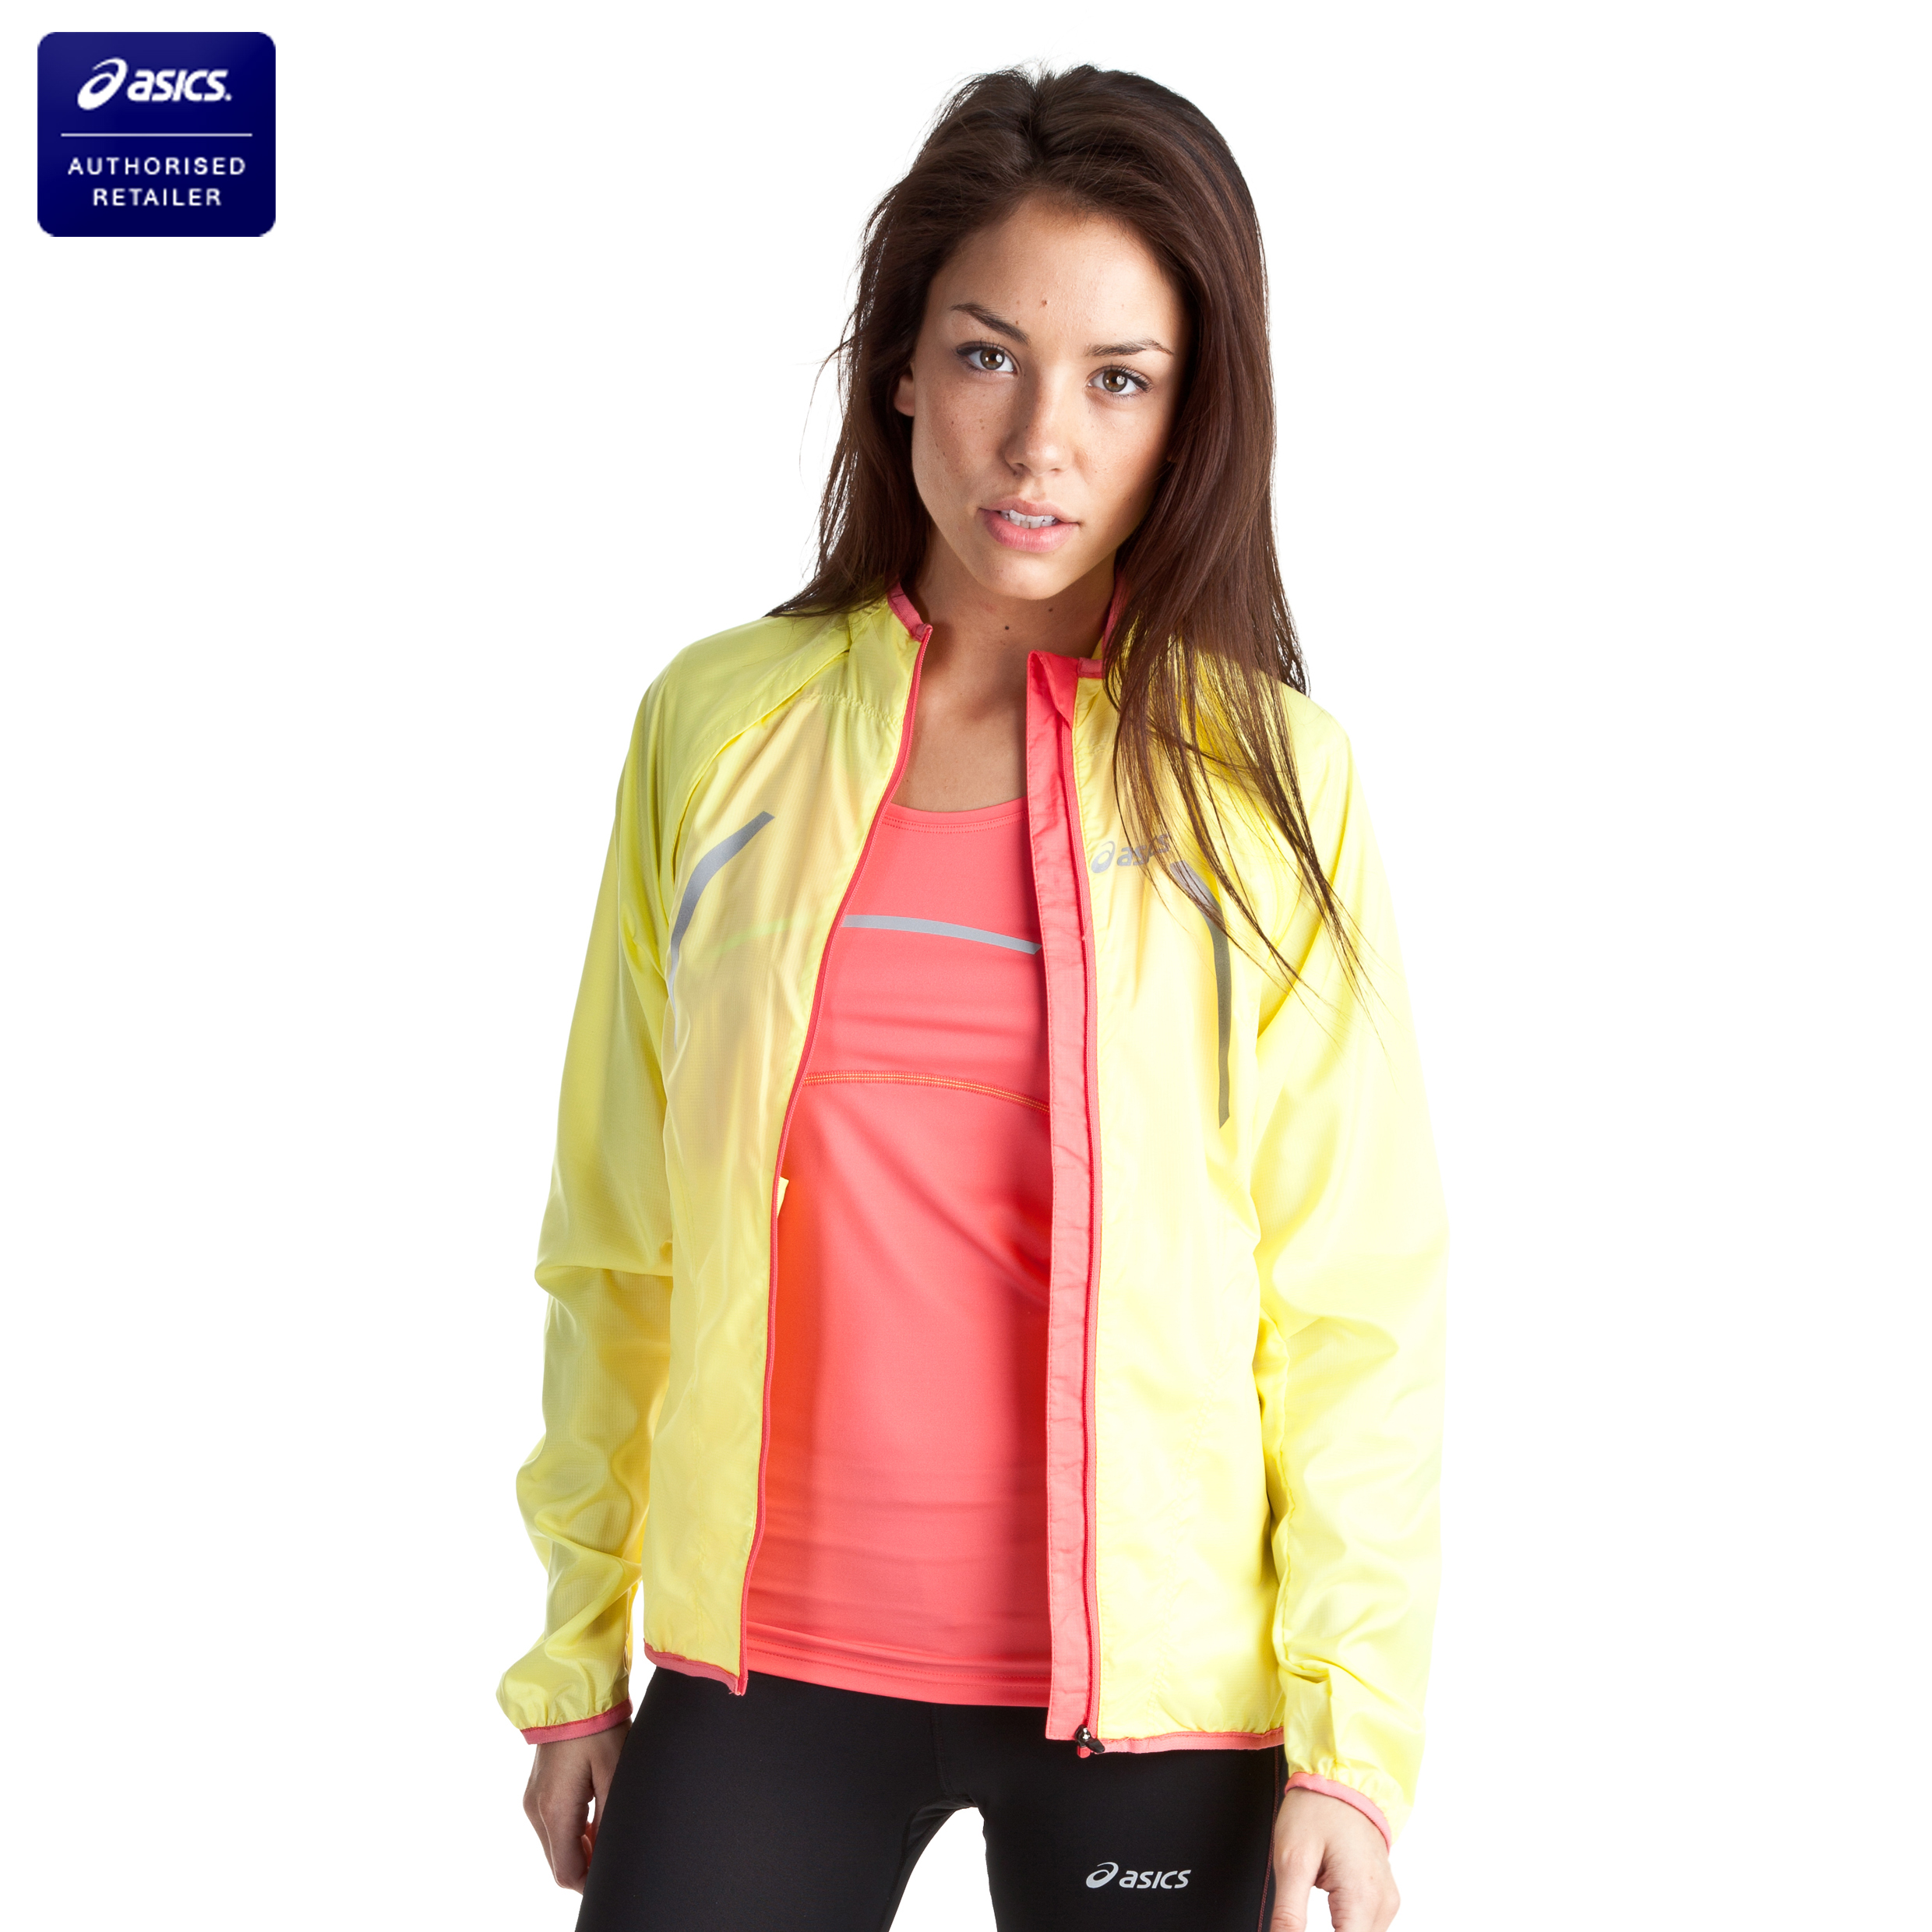 Asics Convertible Jacket - Sunshine Yellow/Coral - Womens